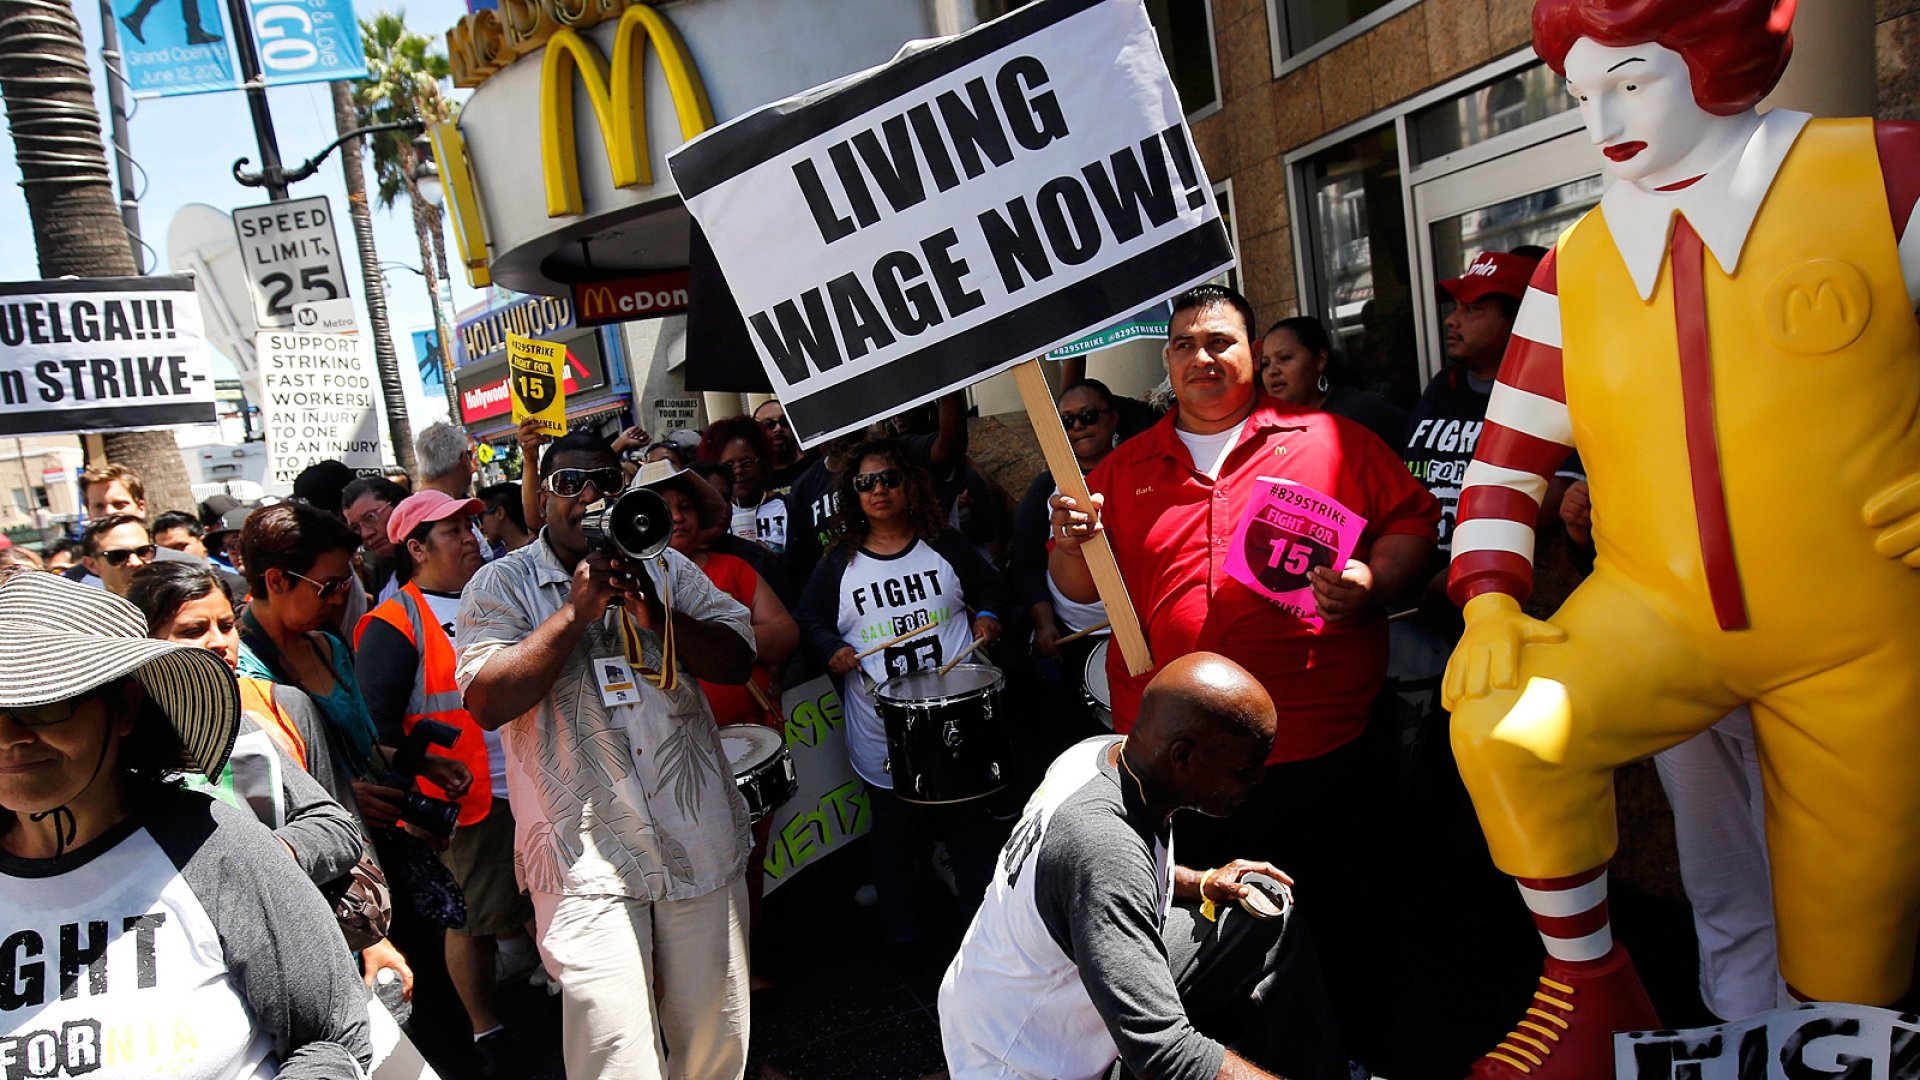 A Strategy for Pacifying Black Friday Wage Protests